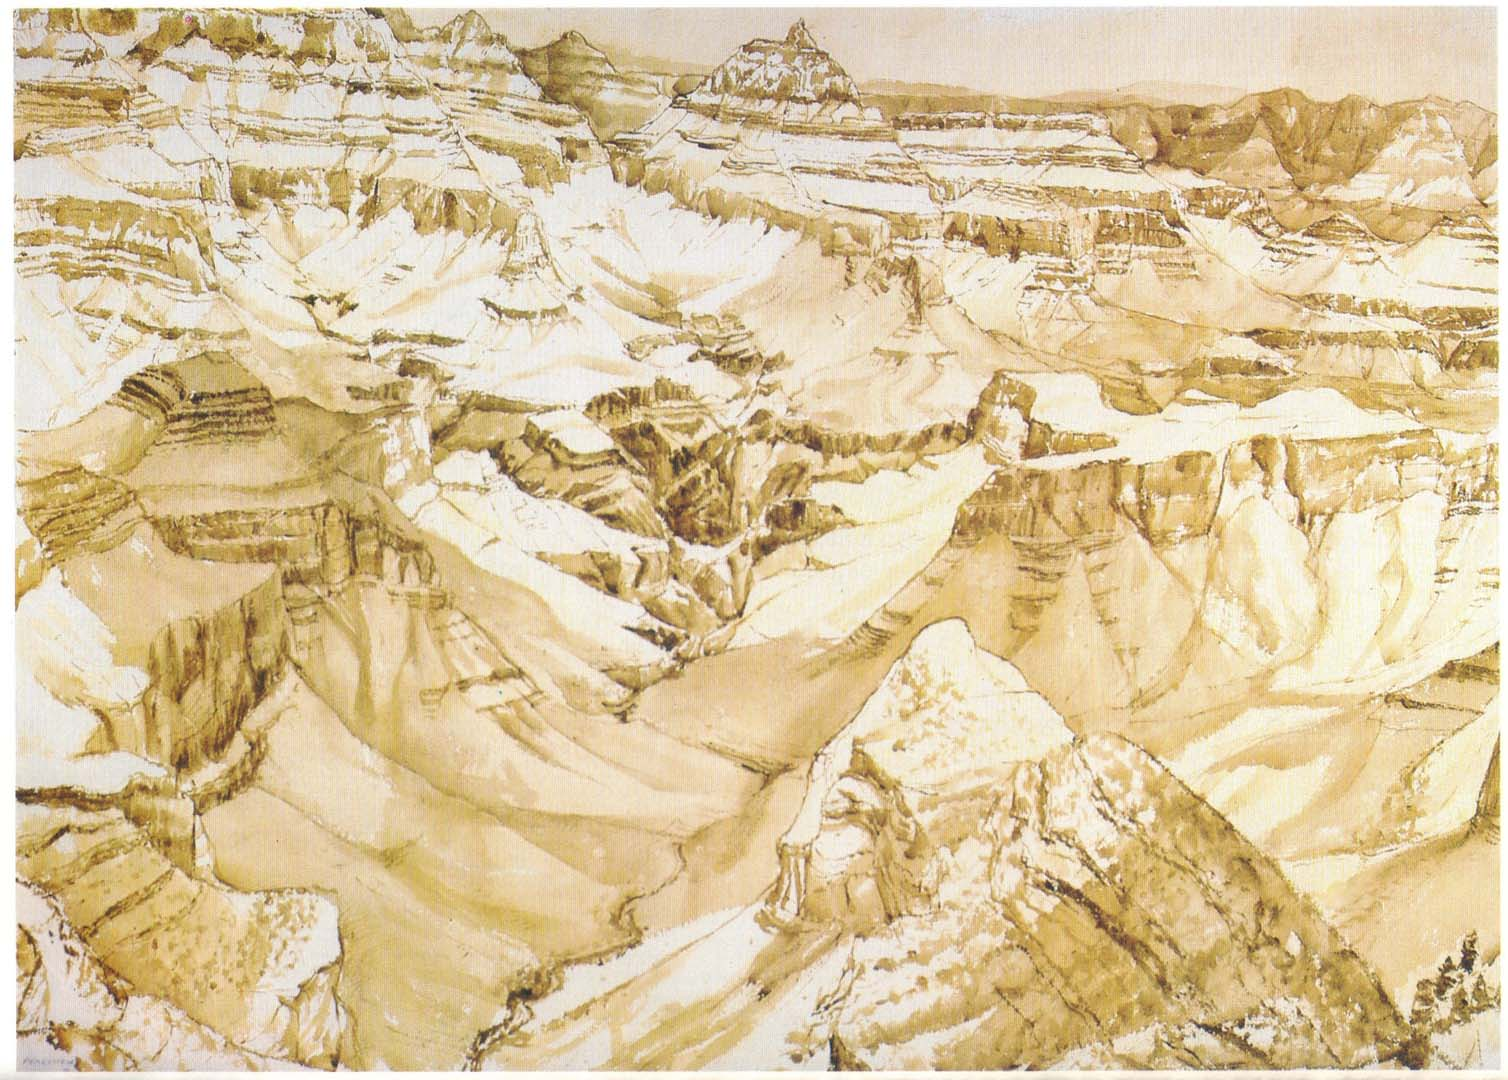 1976 Grand Canyon Sepia Wash on Paper 29.5 x 41